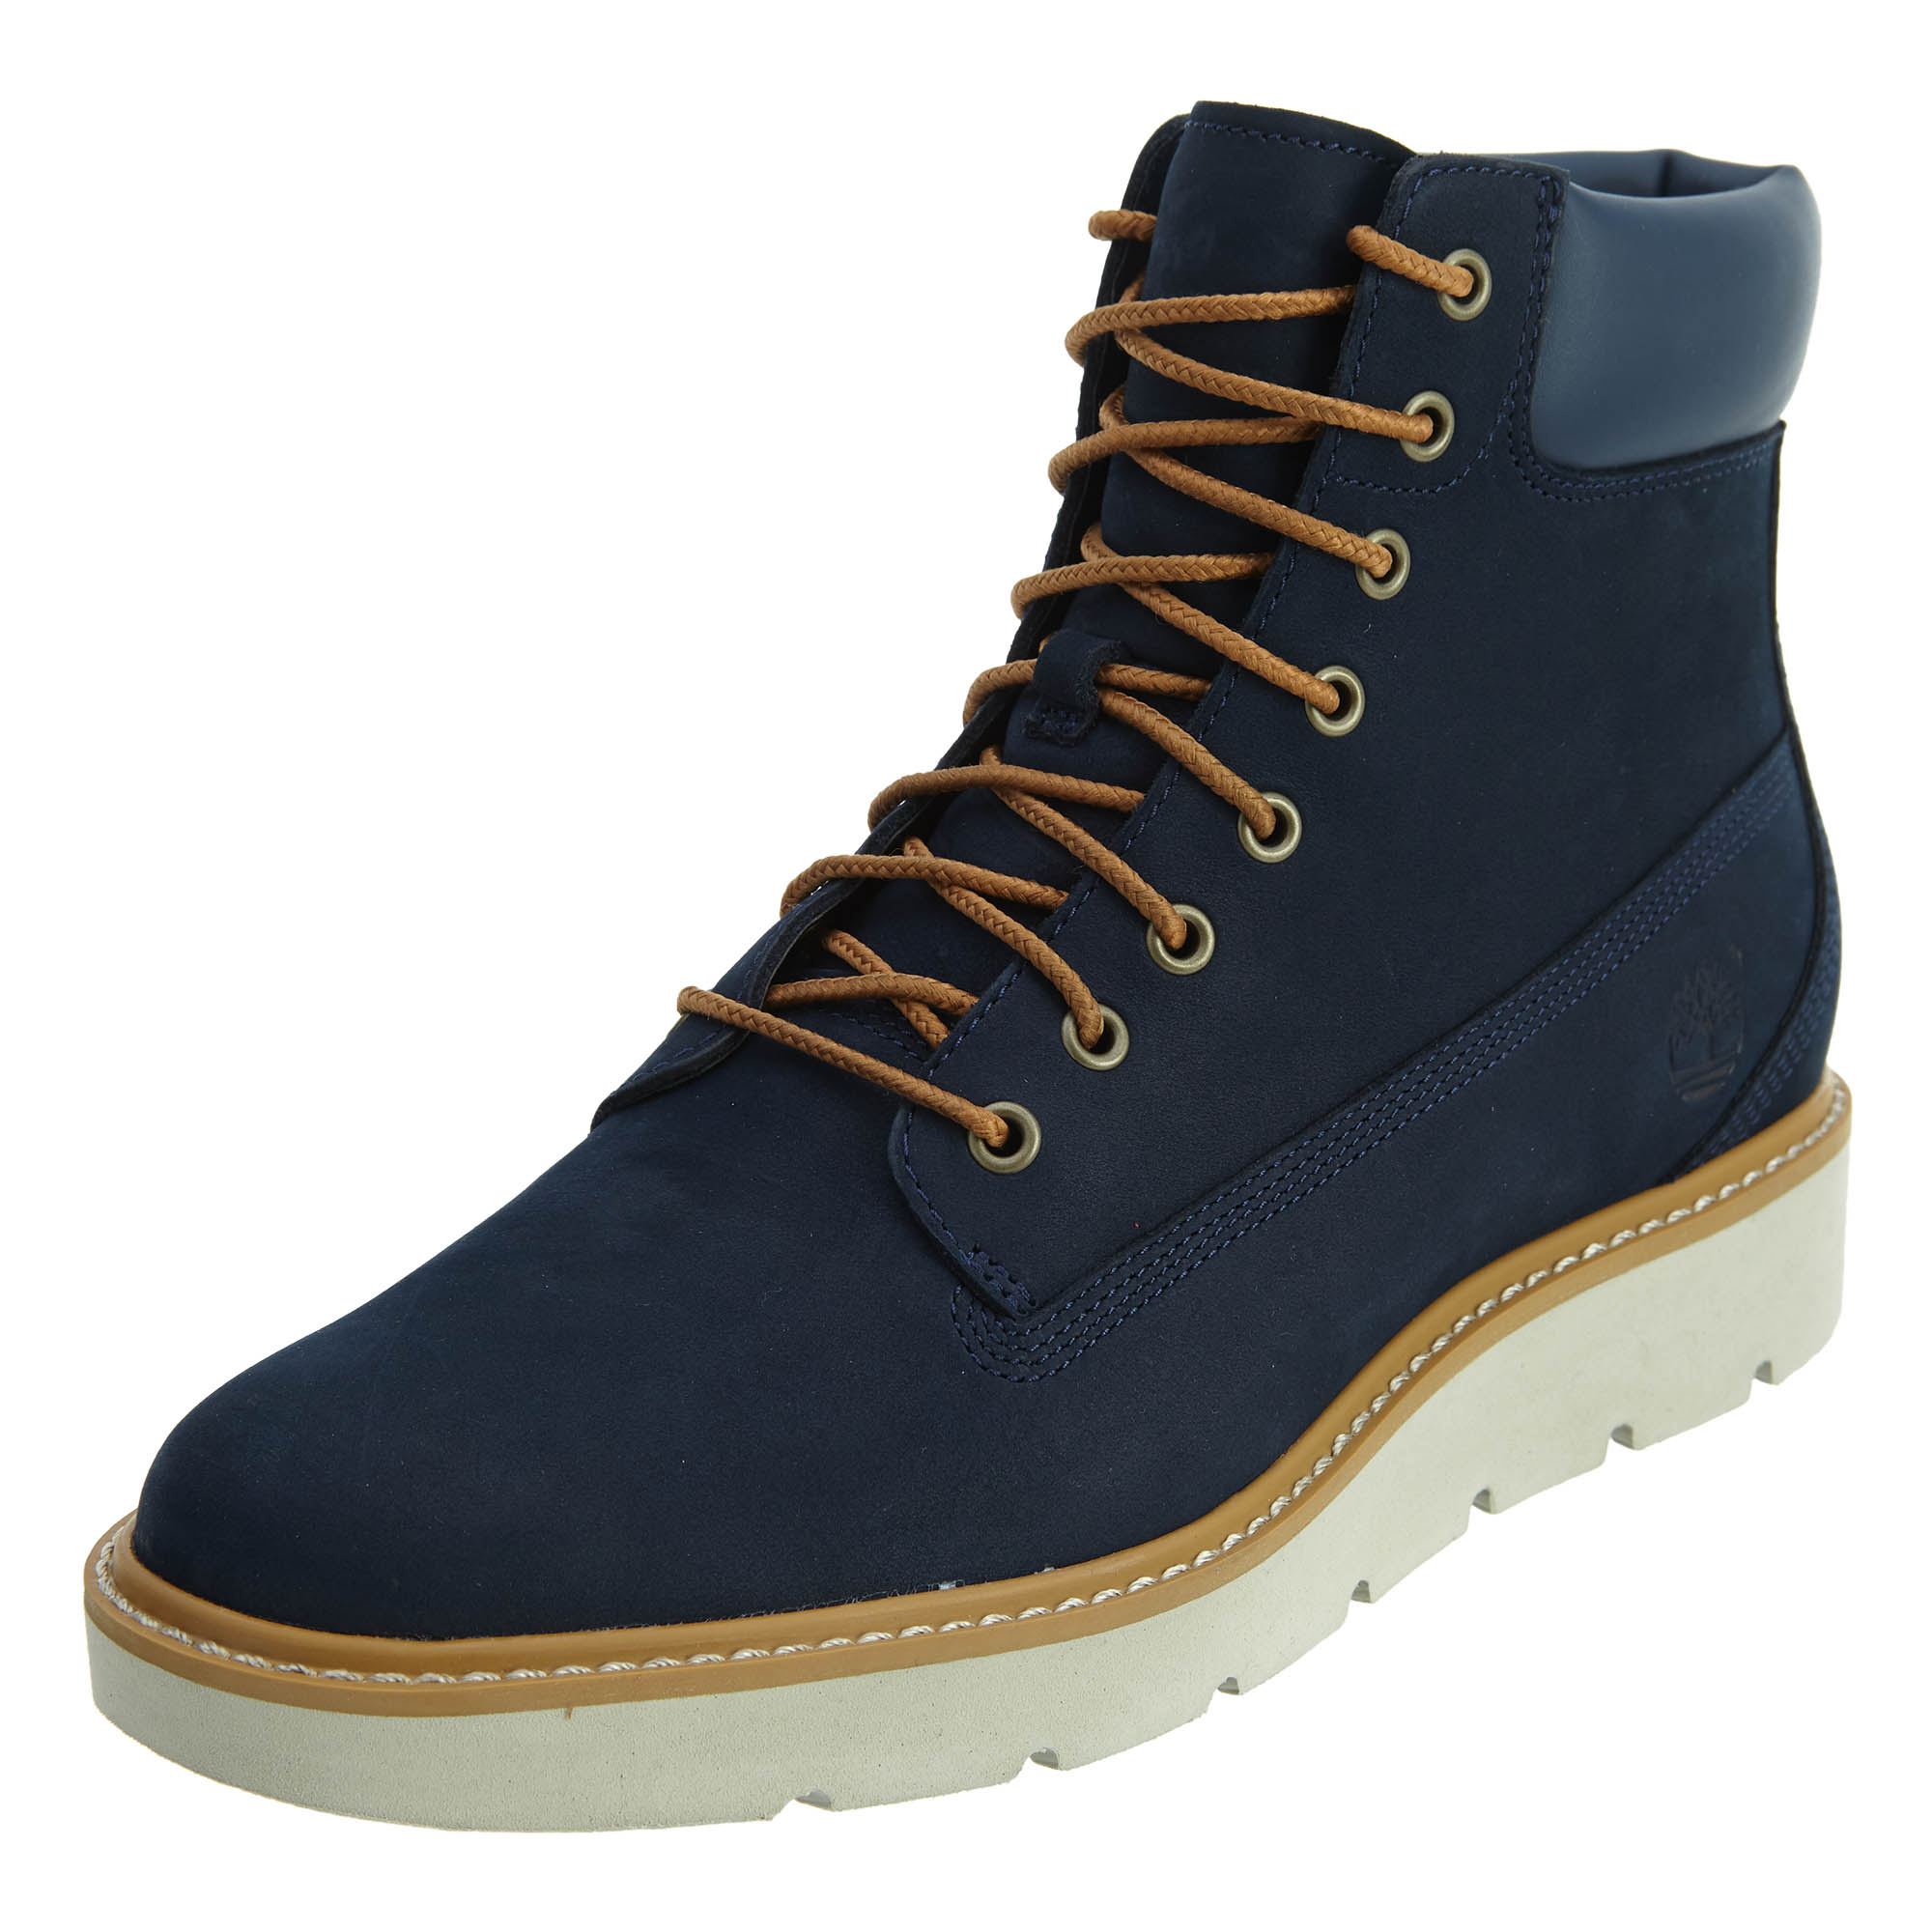 e8938470e6cb0 Details about Timberland Womens 6 Inch Lace Up Boots Navy TB0A1GXU